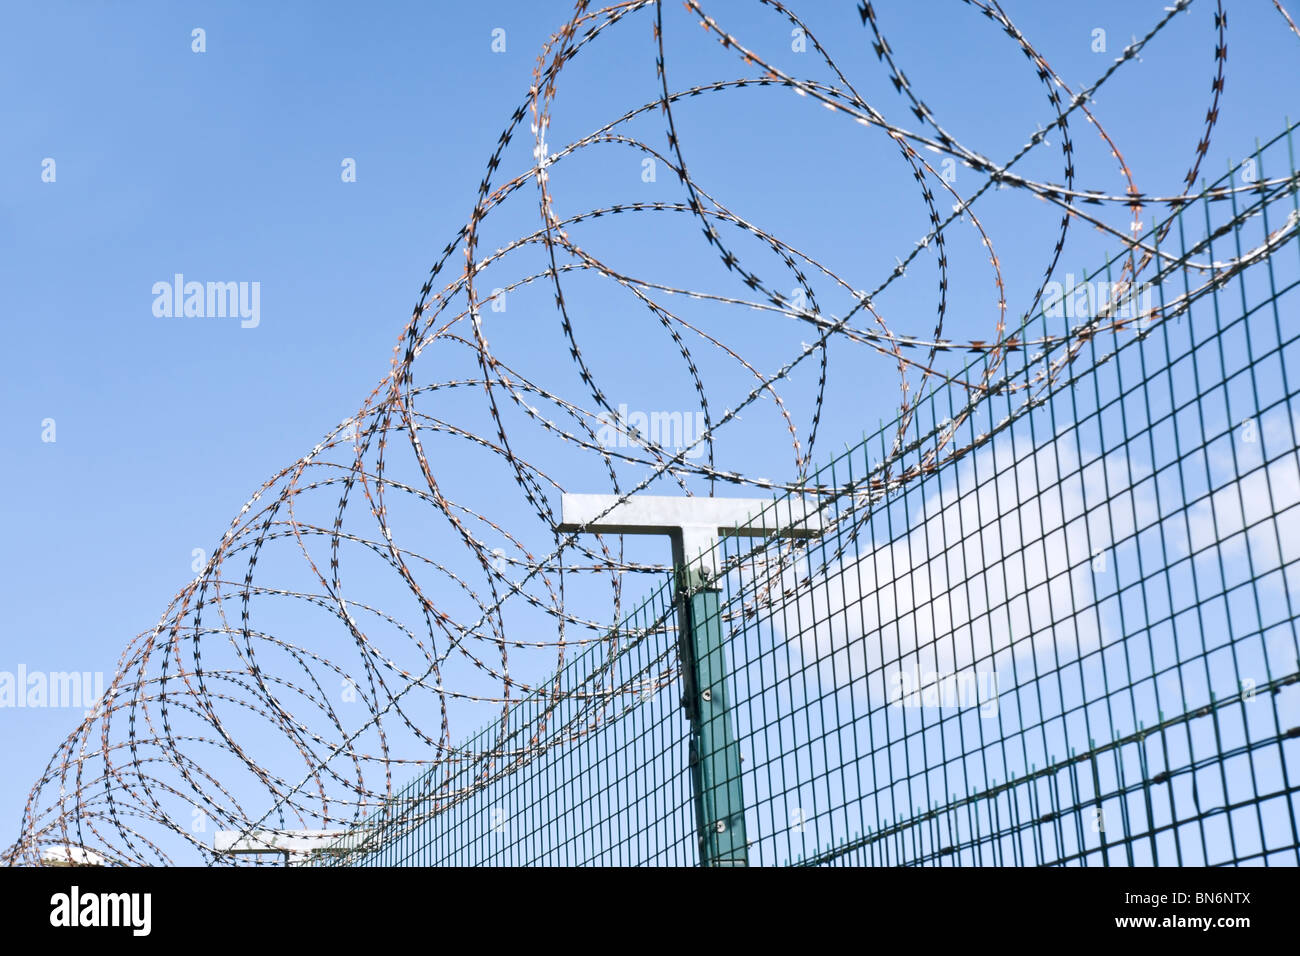 Razor wire topping a wire fence. Stock Photo